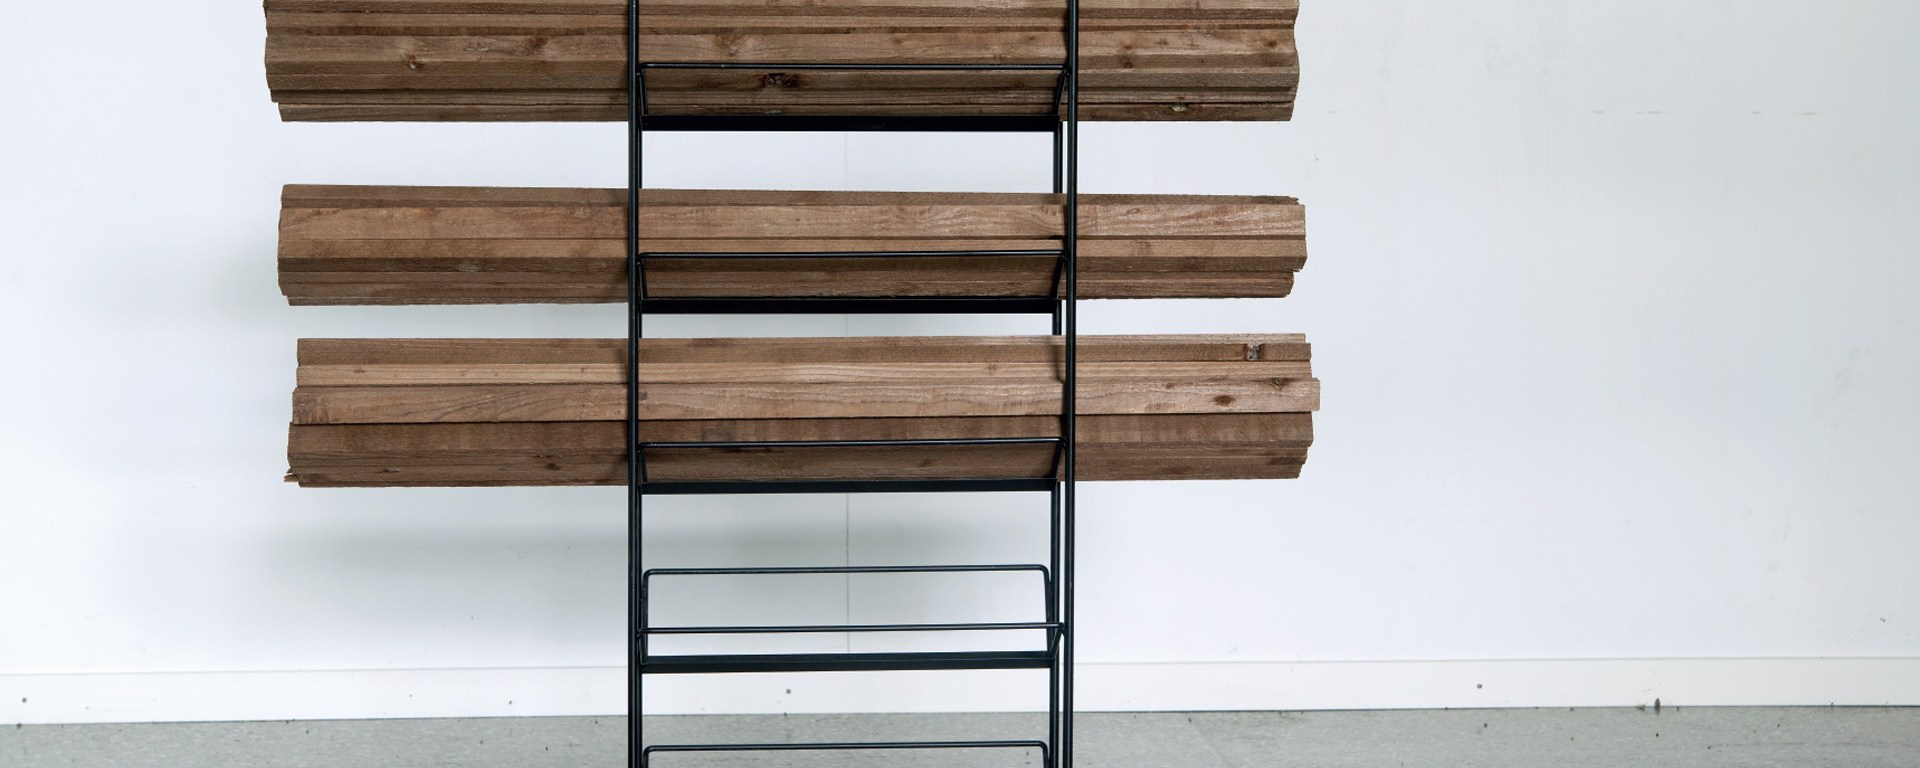 Geraldine Honauer, 'Obstacle', 2015, Wood and metal, 40 × 160 × 160cm. Courtesy of the artist and Unit 1 Gallery | Workshop